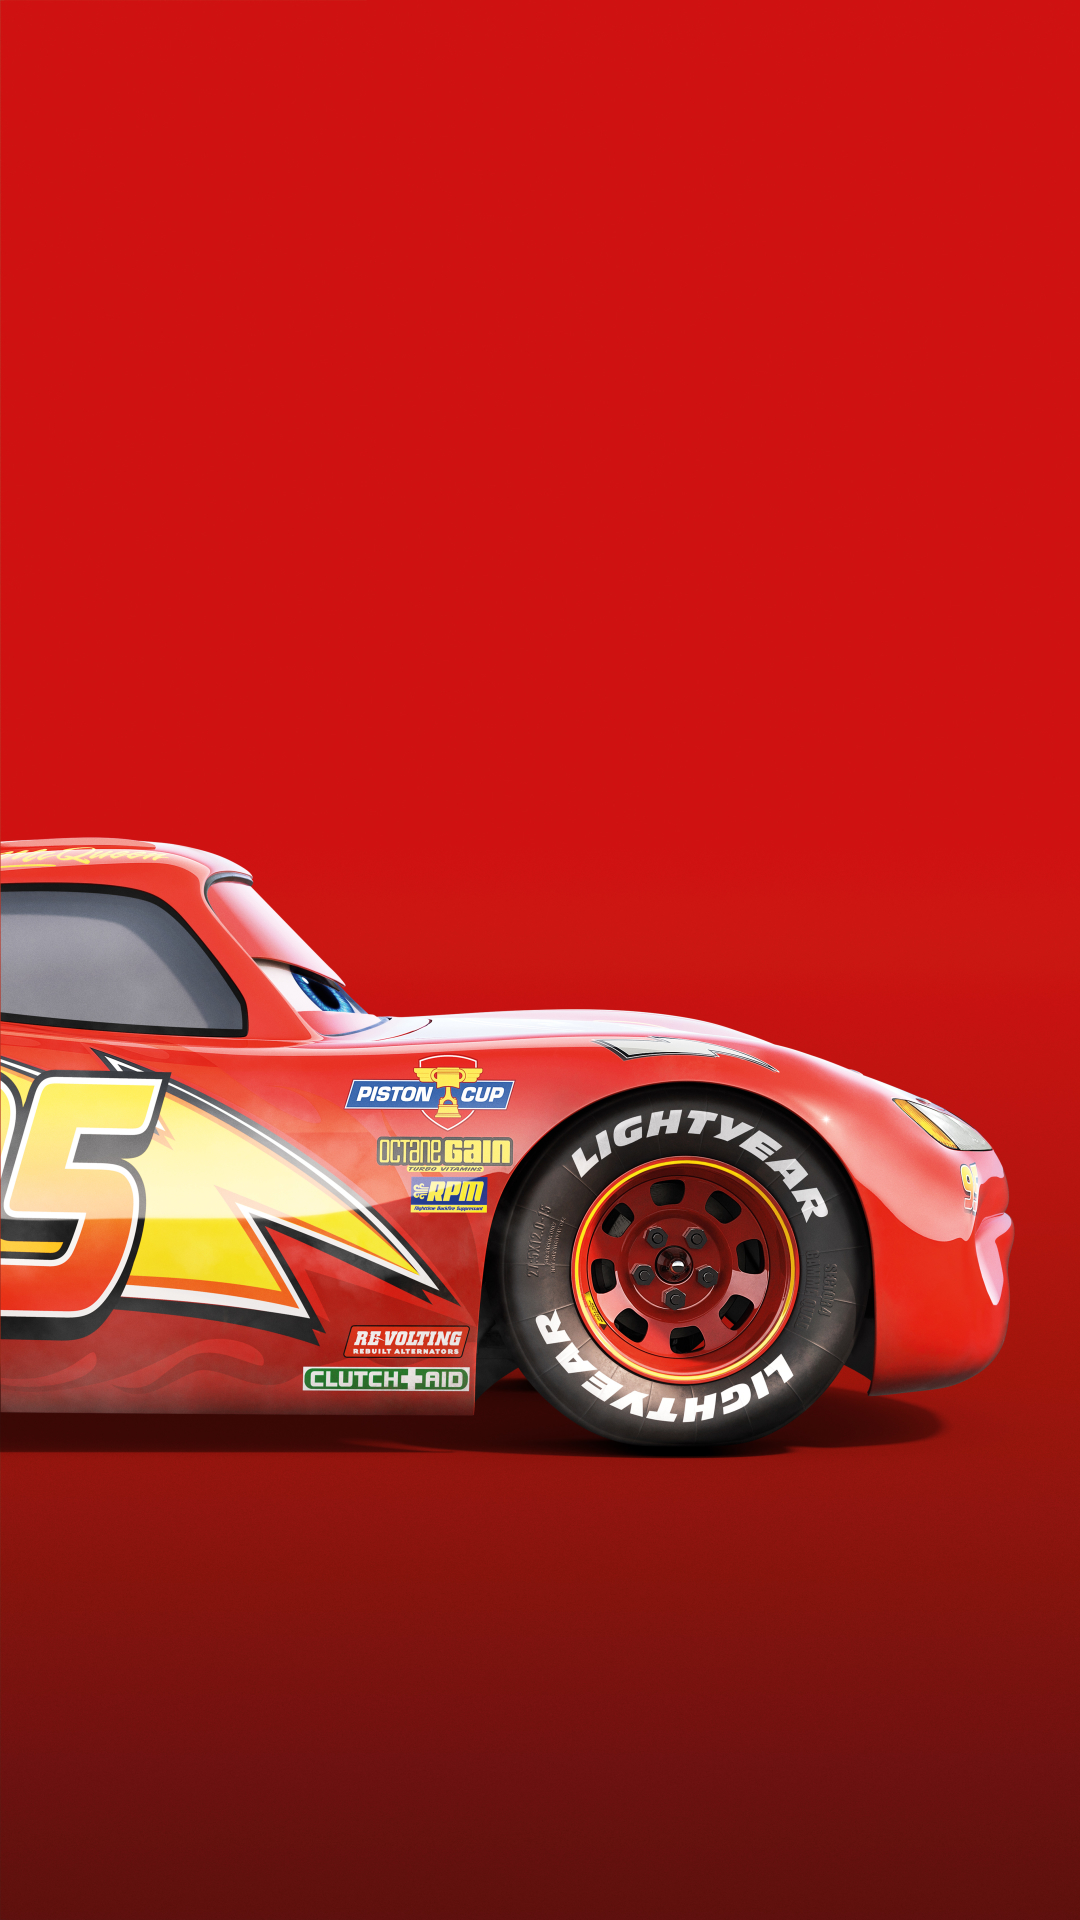 Movie Cars 3 1080x1920 Wallpaper Id 711245 Mobile Abyss